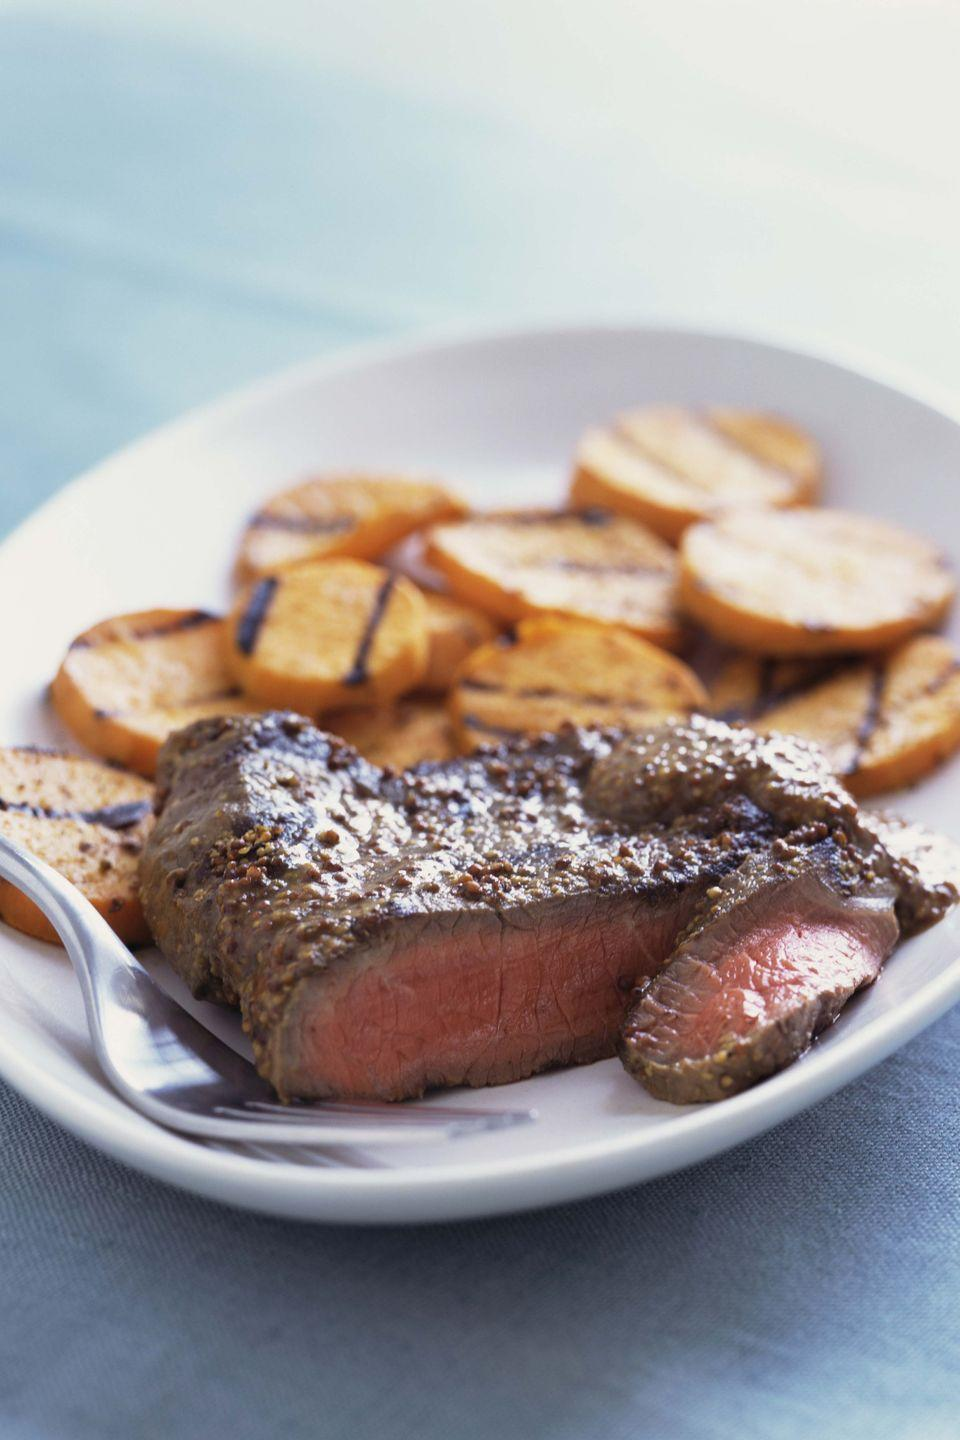 "<p>Serve 3 ounces broiled or grilled flank steak with 1 baked <a href=""https://www.goodhousekeeping.com/health/diet-nutrition/a48026/sweet-potato-nutrition/"" rel=""nofollow noopener"" target=""_blank"" data-ylk=""slk:sweet potato"" class=""link rapid-noclick-resp"">sweet potato</a> with 1 teaspoon butter; 1 cup steamed zucchini; and 1 1/2 cup berries. </p><p><strong>RELATED: <a href=""https://www.goodhousekeeping.com/food-recipes/healthy/g154/healthy-dinner-recipes/"" rel=""nofollow noopener"" target=""_blank"" data-ylk=""slk:100+ Best Healthy Dinner Ideas You'll Want to Make Tonight"" class=""link rapid-noclick-resp"">100+ Best Healthy Dinner Ideas You'll Want to Make Tonight</a></strong></p>"